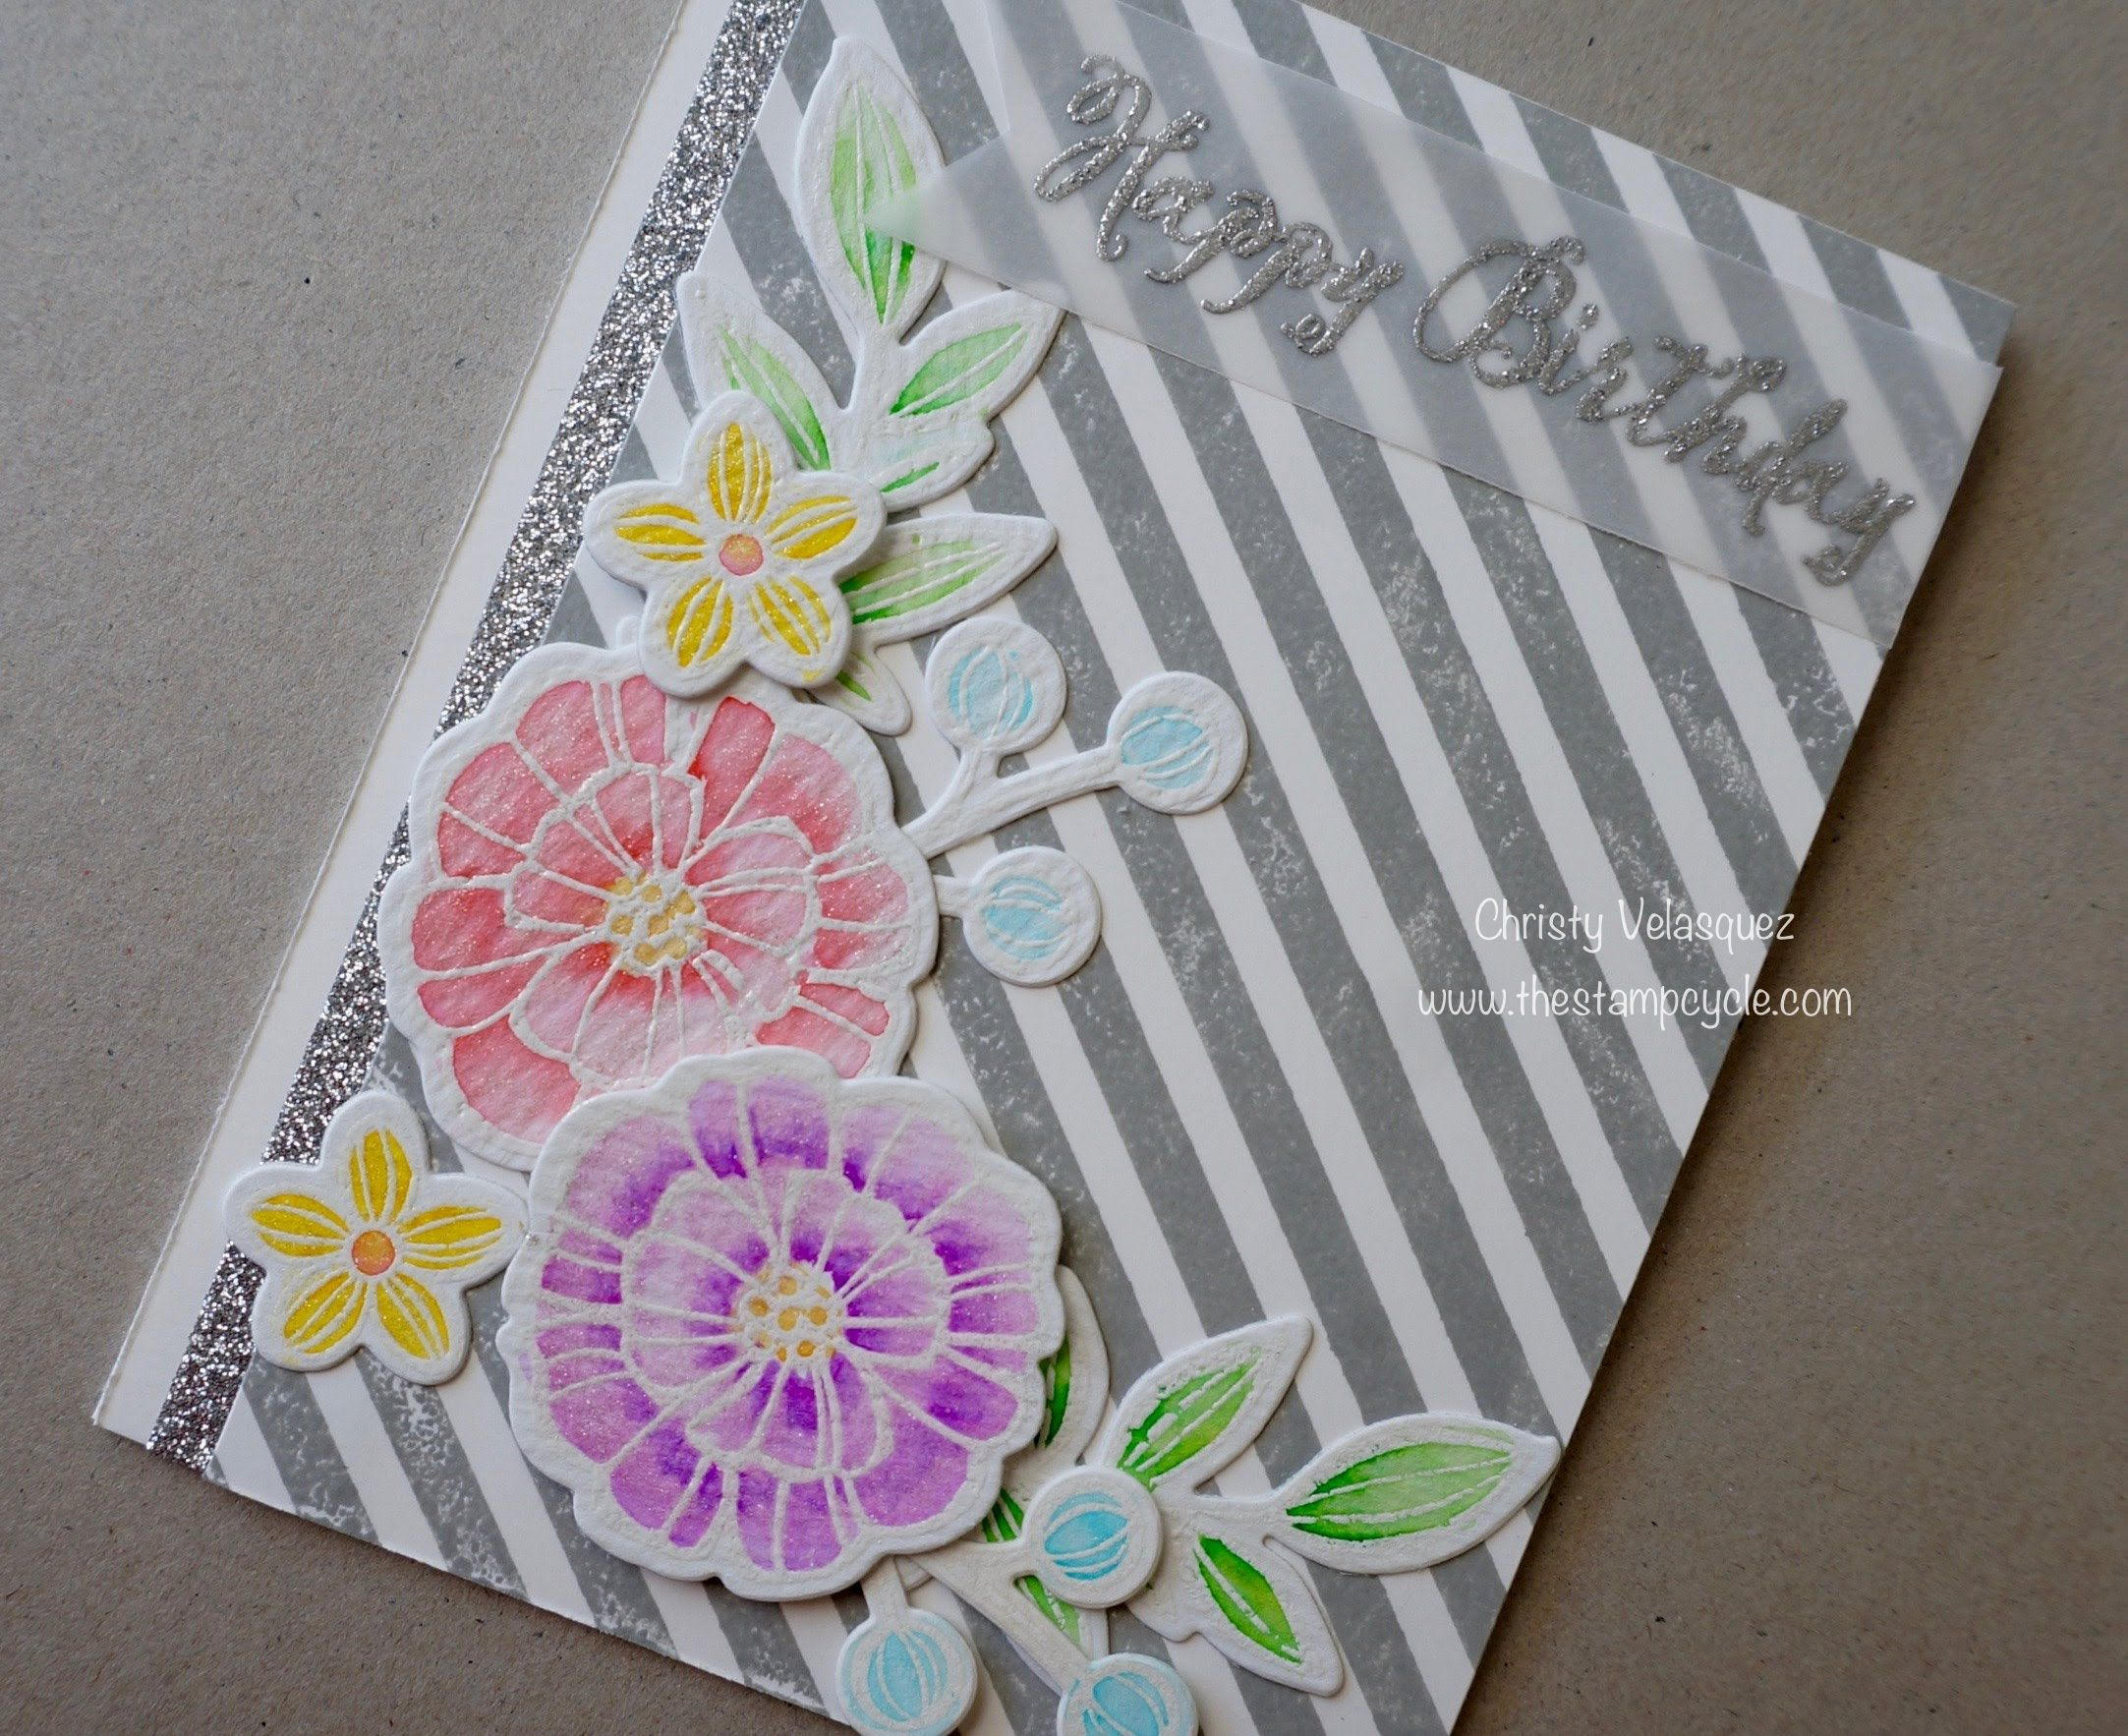 Watercolor Birthday Cards Tutorial ~ Stampin up falling flowers watercolor card using zig clean clear